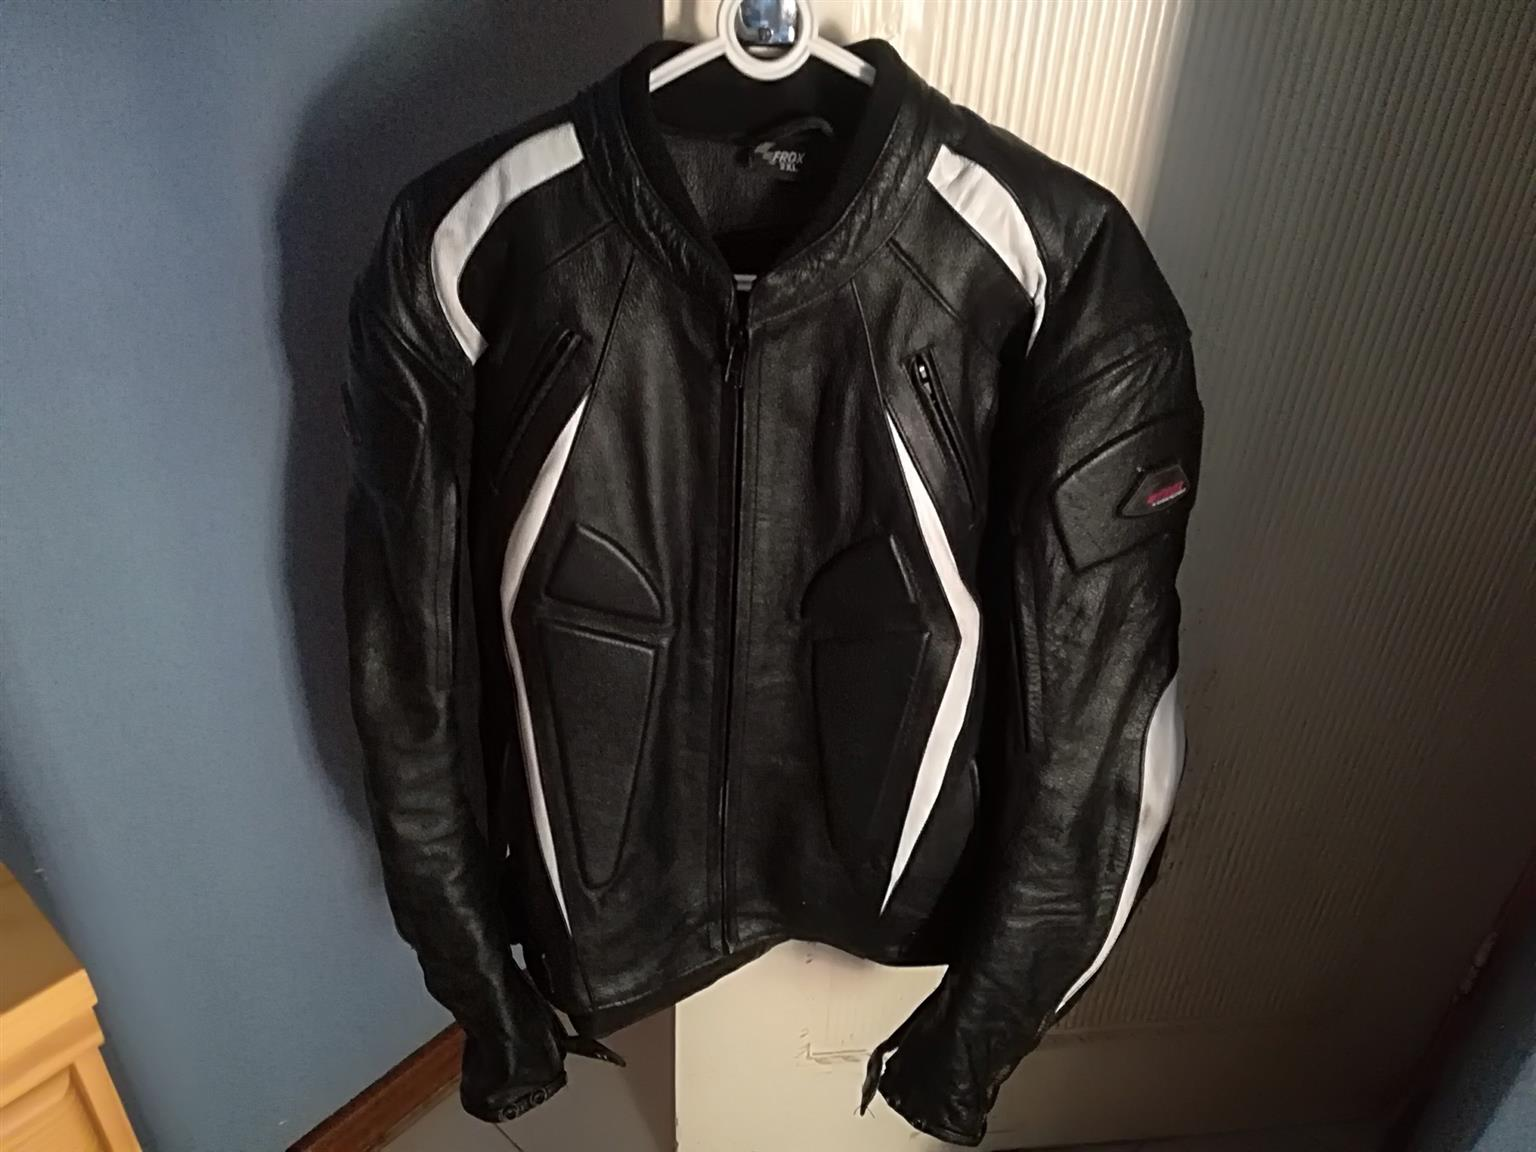 Full leather frox jacket XXL for sale.Used a Few times only,still brand new.